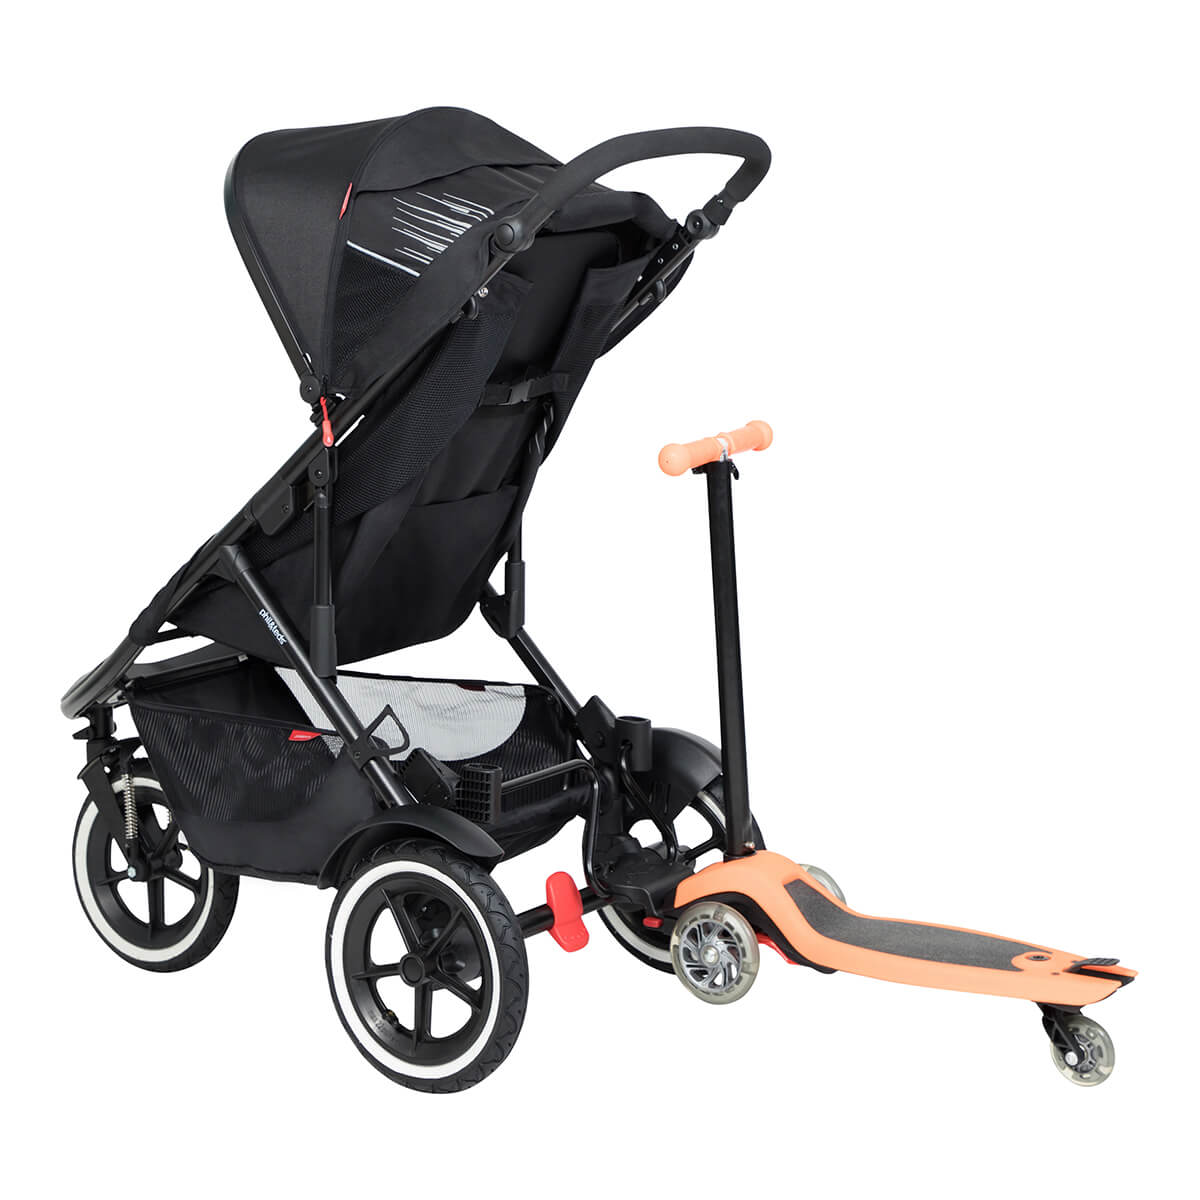 https://cdn.accentuate.io/4390323060832/19440099852472/philteds-sport-buggy-with-freerider-stroller-board-in-rear-v1626488624101.jpg?1200x1200